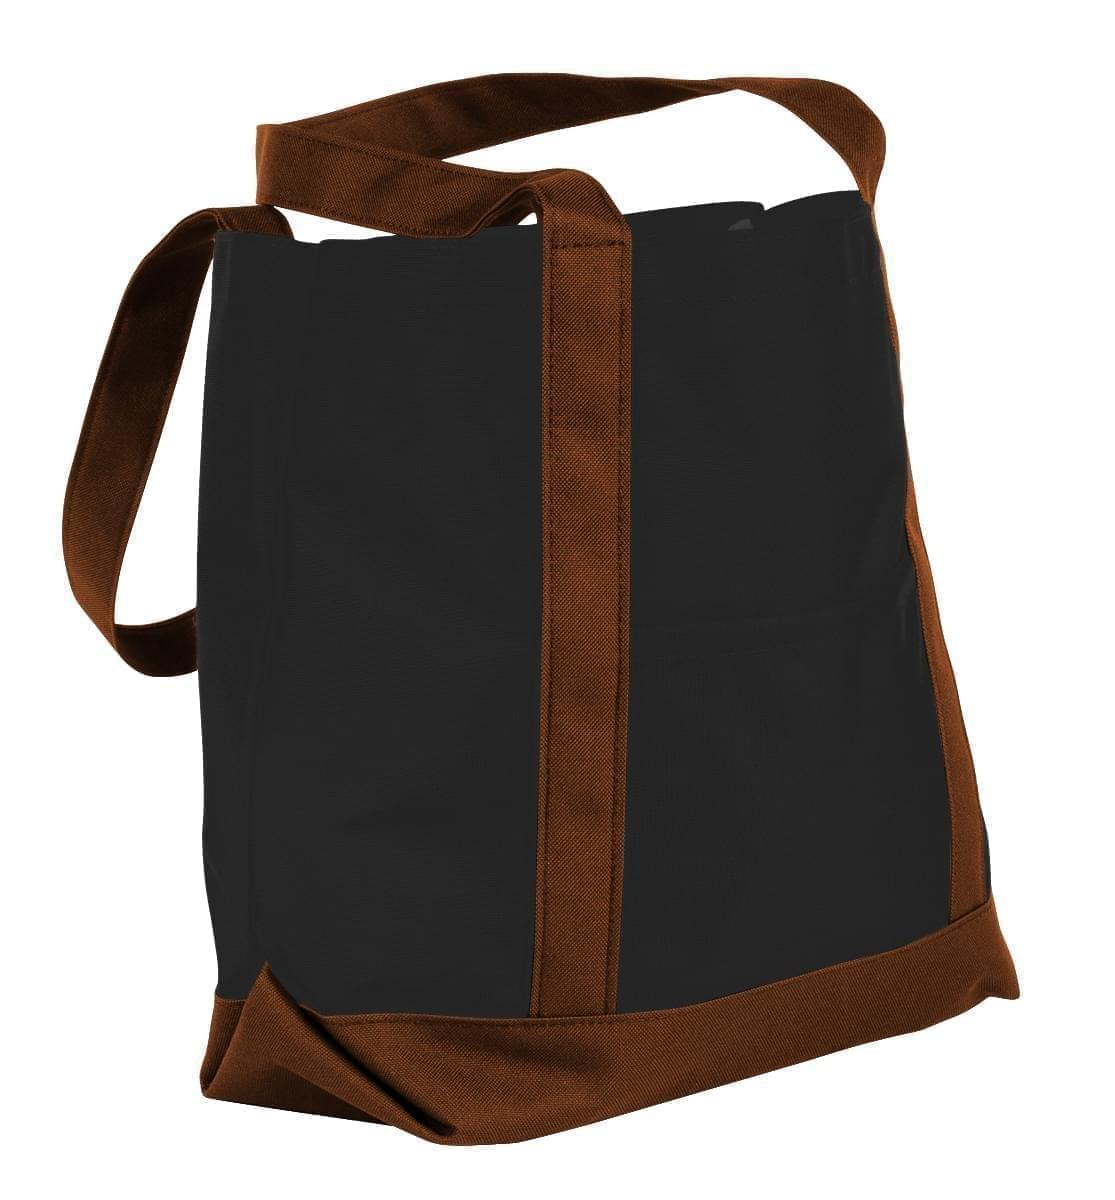 USA Made Canvas Fashion Tote Bags, Black-Brown, XAACL1UAHD